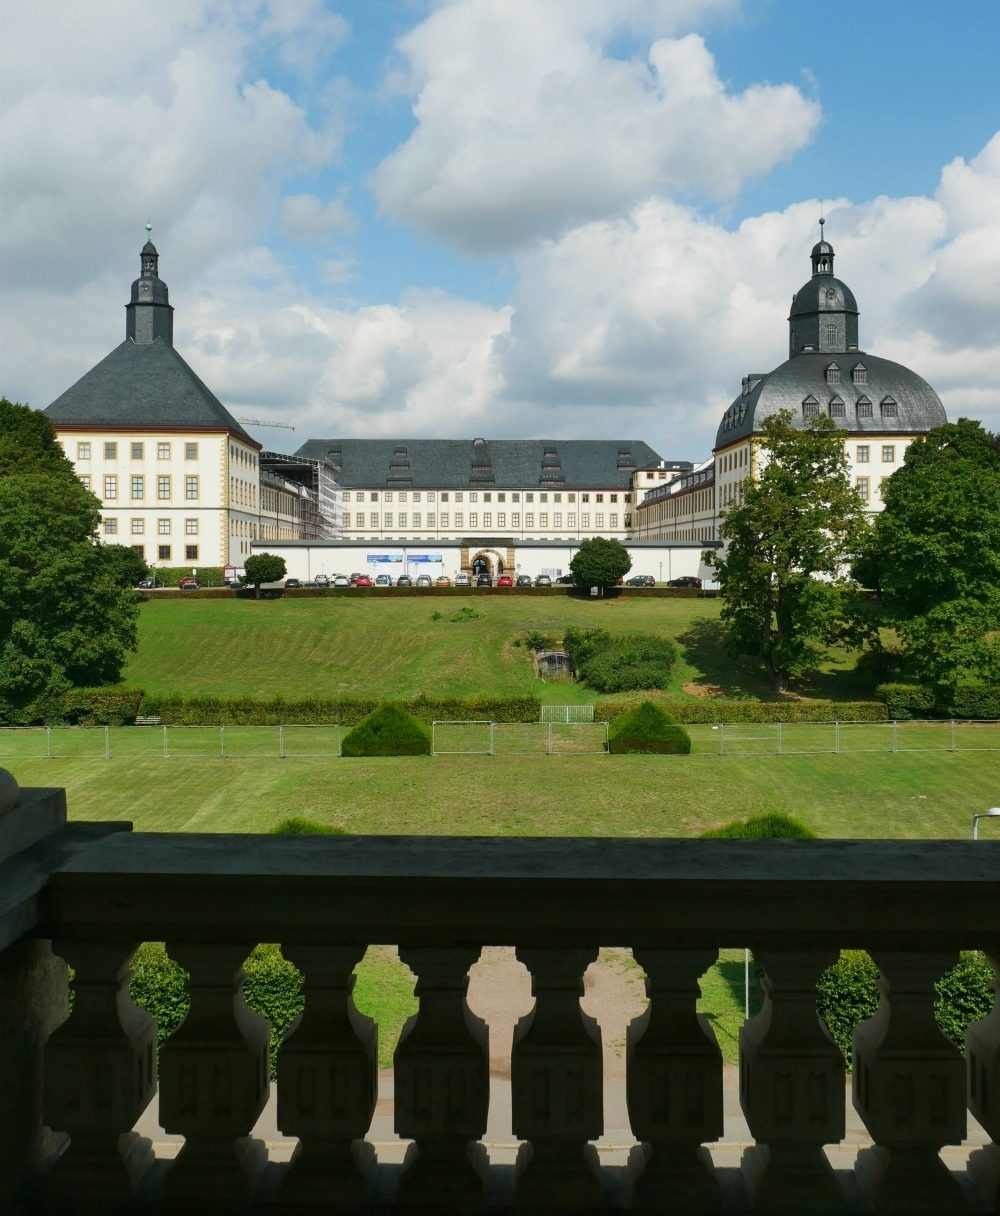 Friedenstein Palace in Gotha, Thuringia, Germany Photo Heatheronhertravels.com